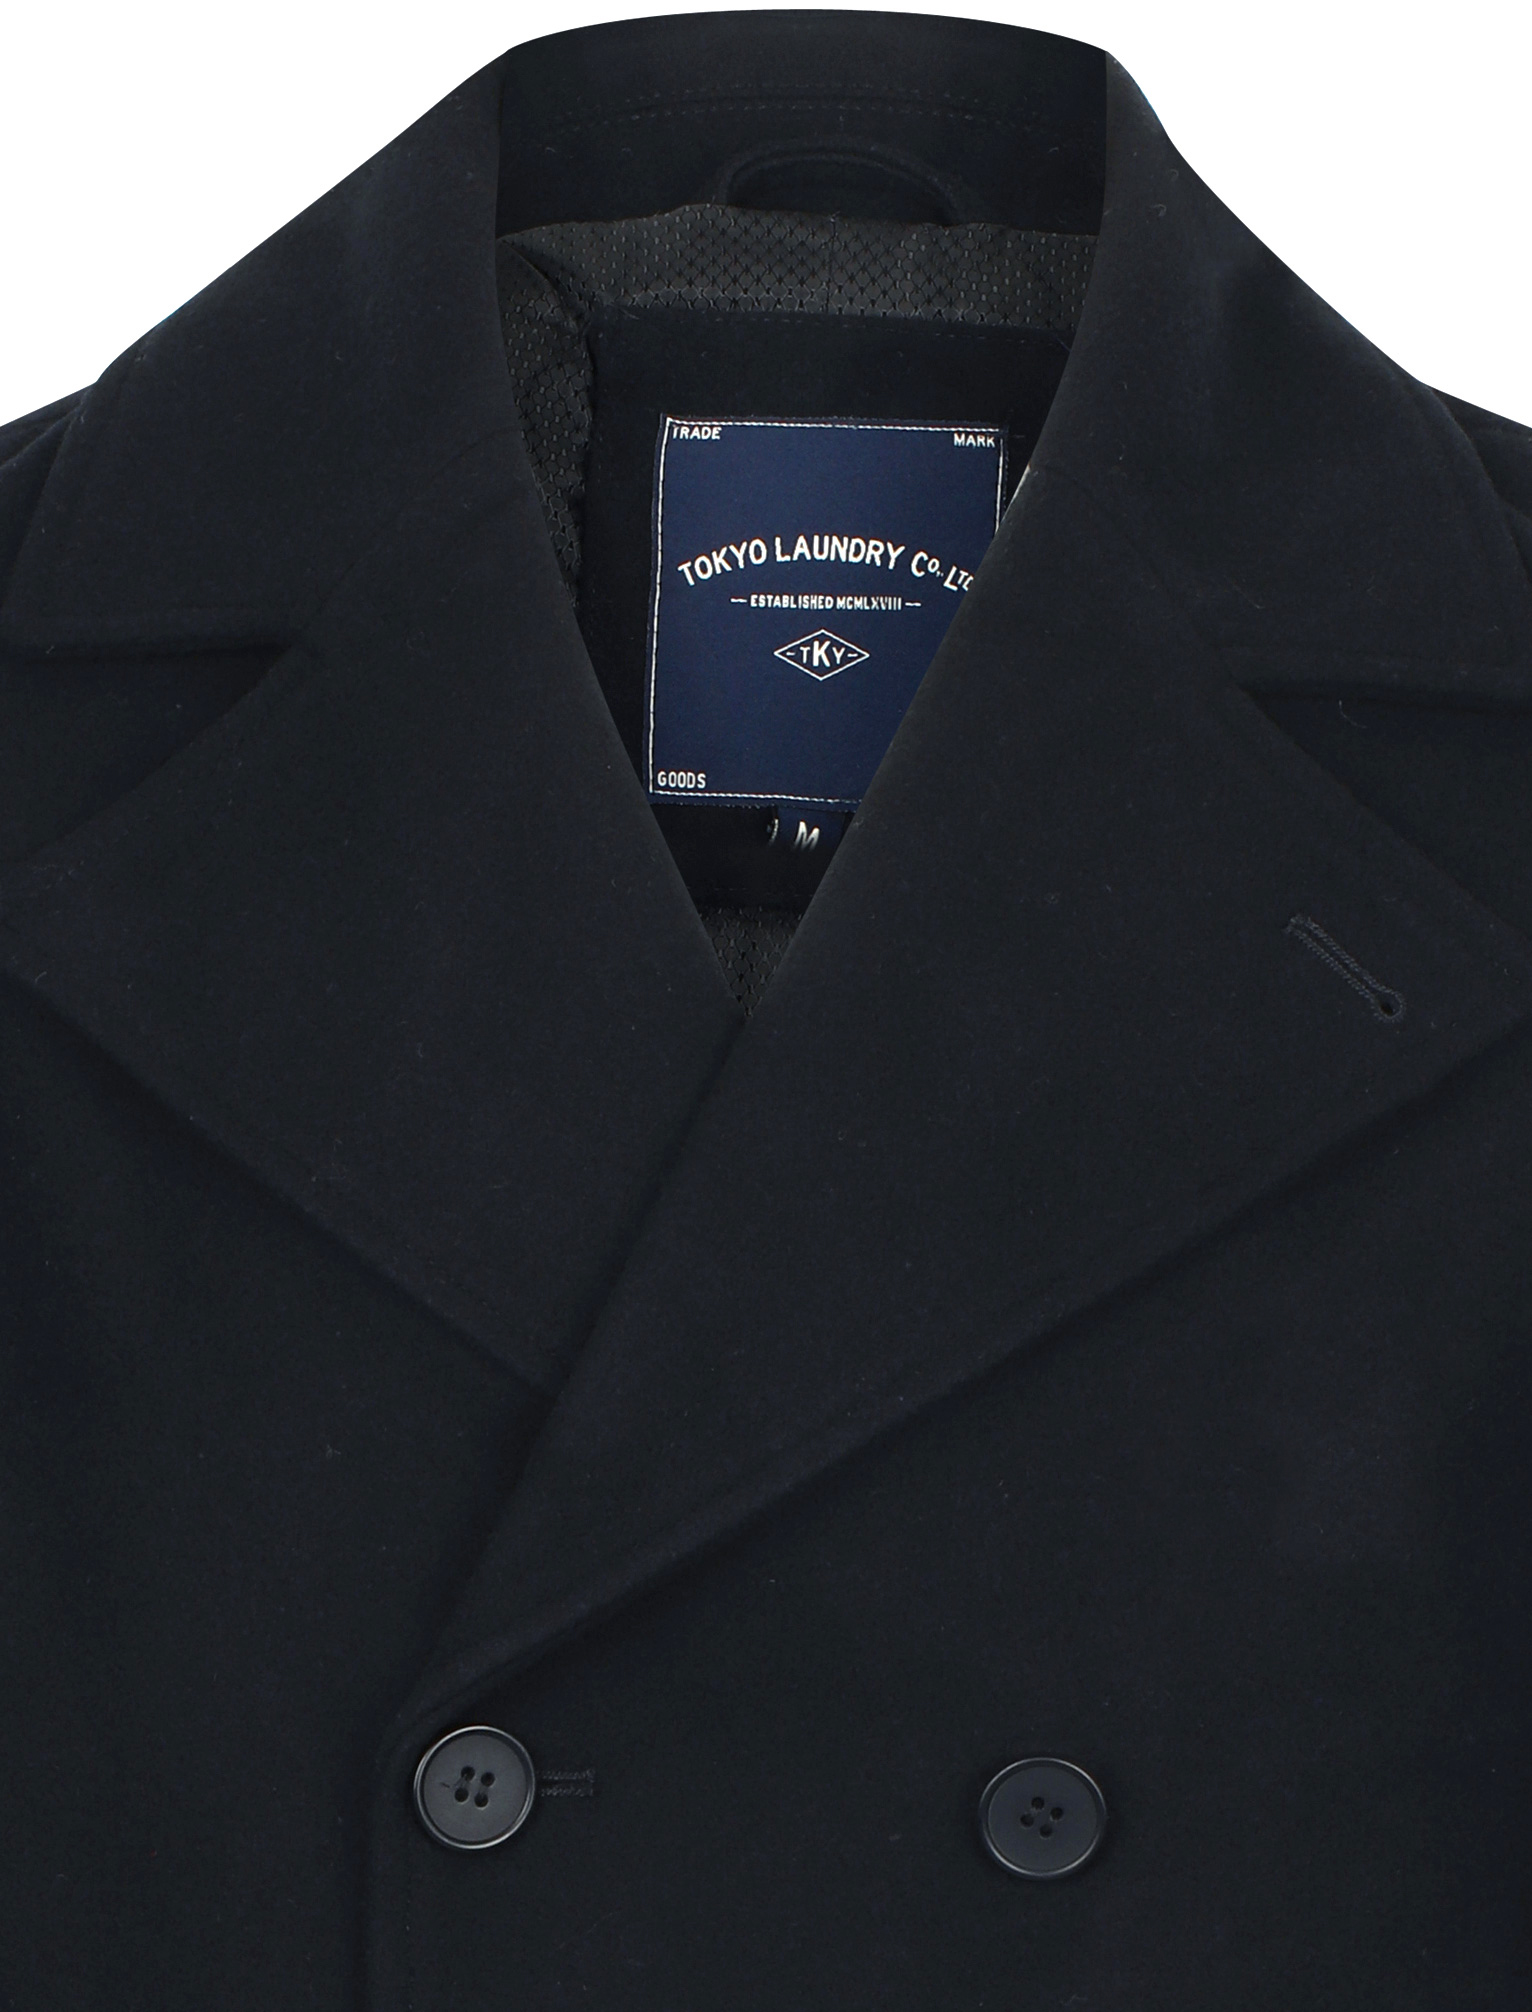 New-Mens-Tokyo-Laundry-Branded-Wool-Blend-Peacoat-Duffle-Coat-Size-S-XXL thumbnail 5